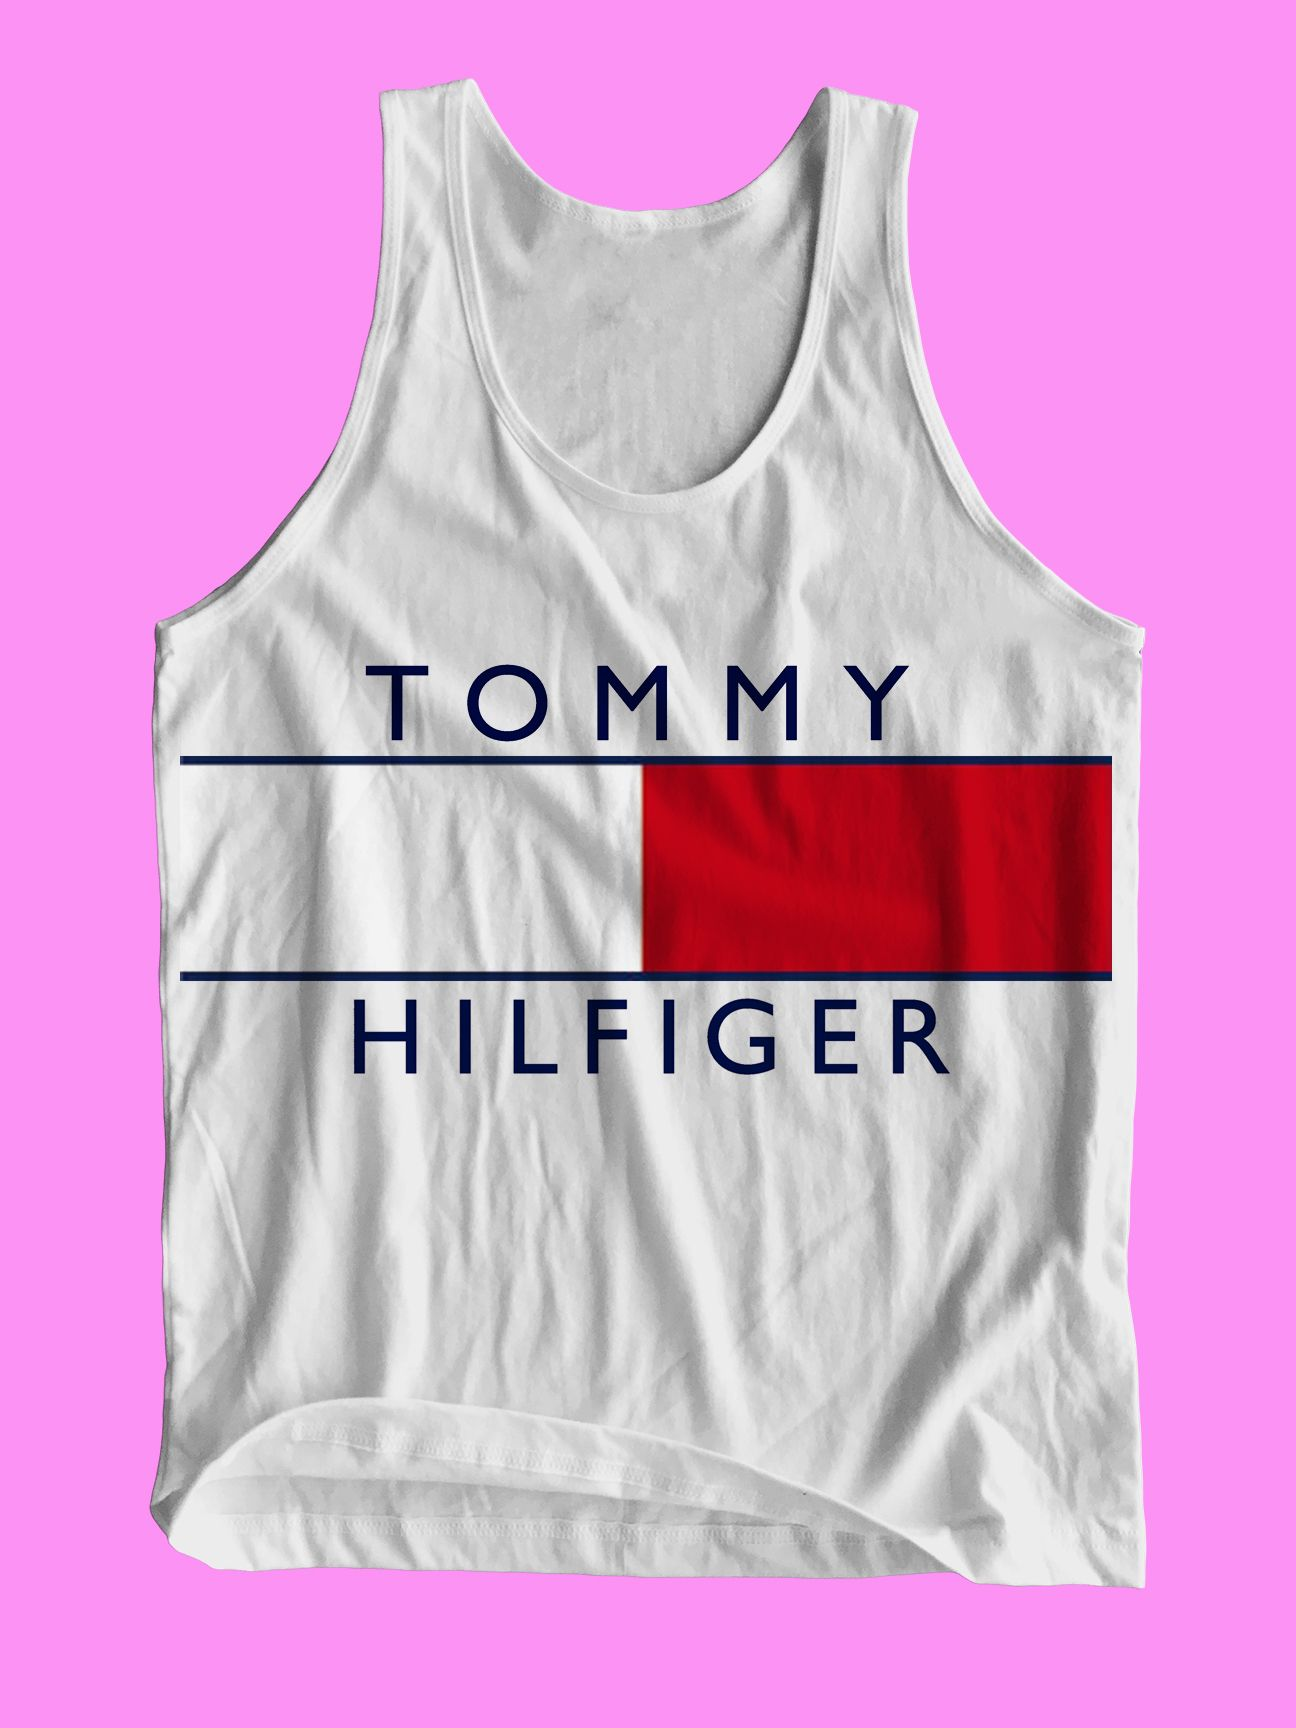 d1336ab270f1 tommy hilfiger logo Adult Tank Top Men and Women